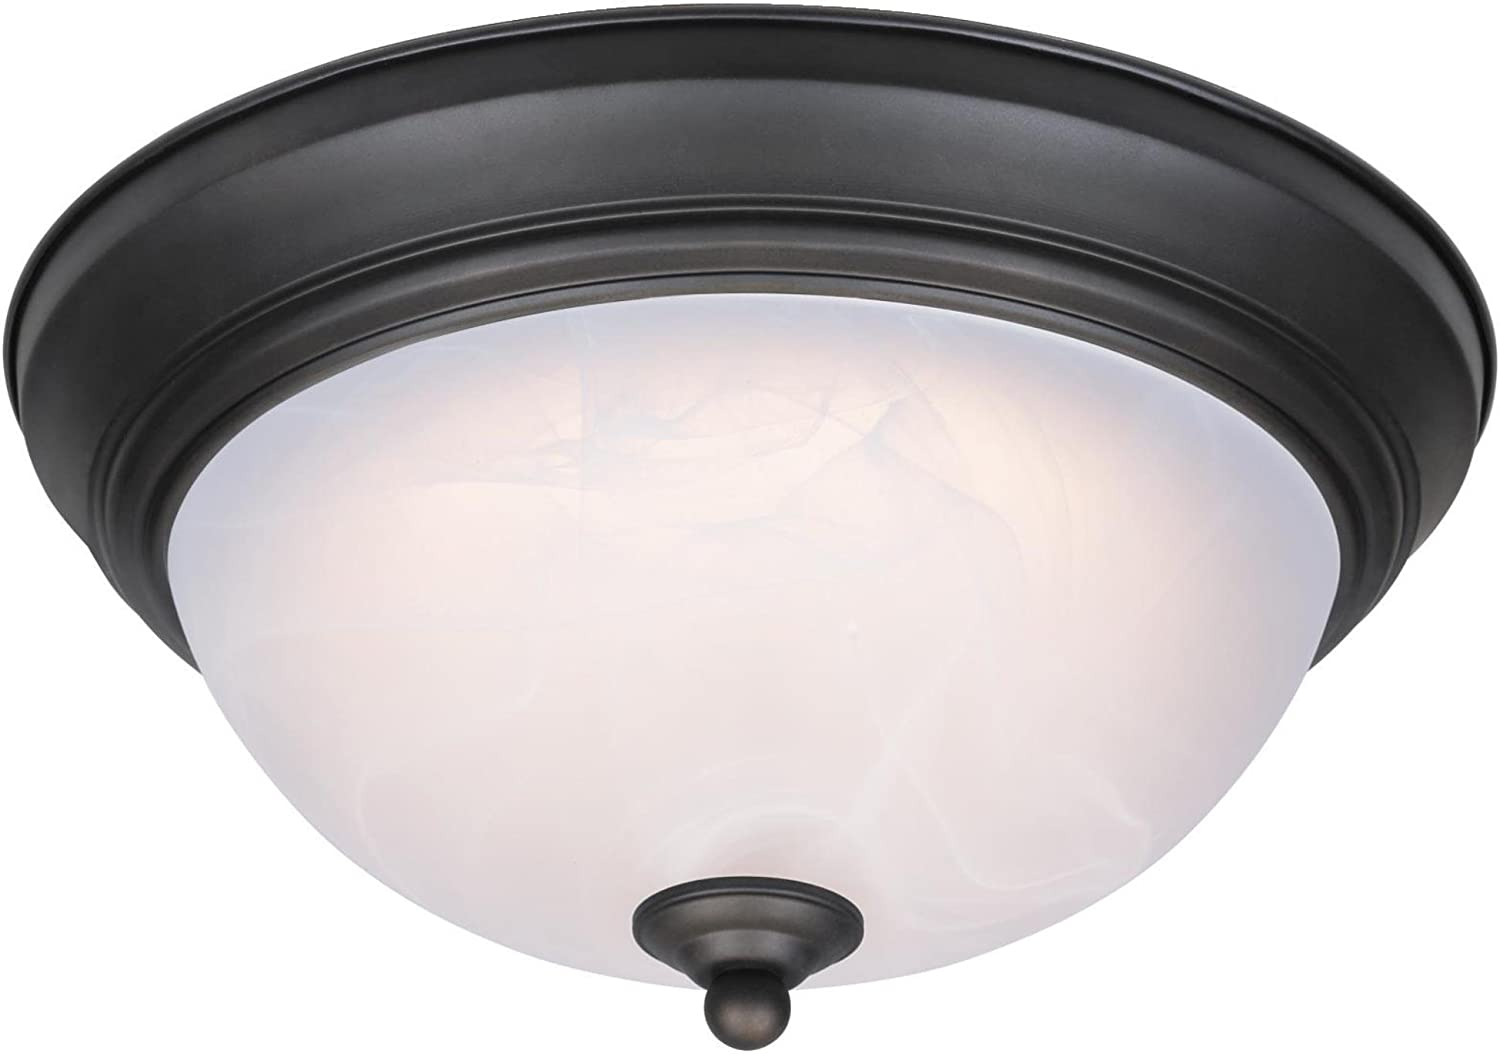 Westinghouse Lighting 6400600 11-Inch LED Indoor Flush Mount Ceiling Fixture, Oil Rubbed Bronze Finish with White Alabaster Glass